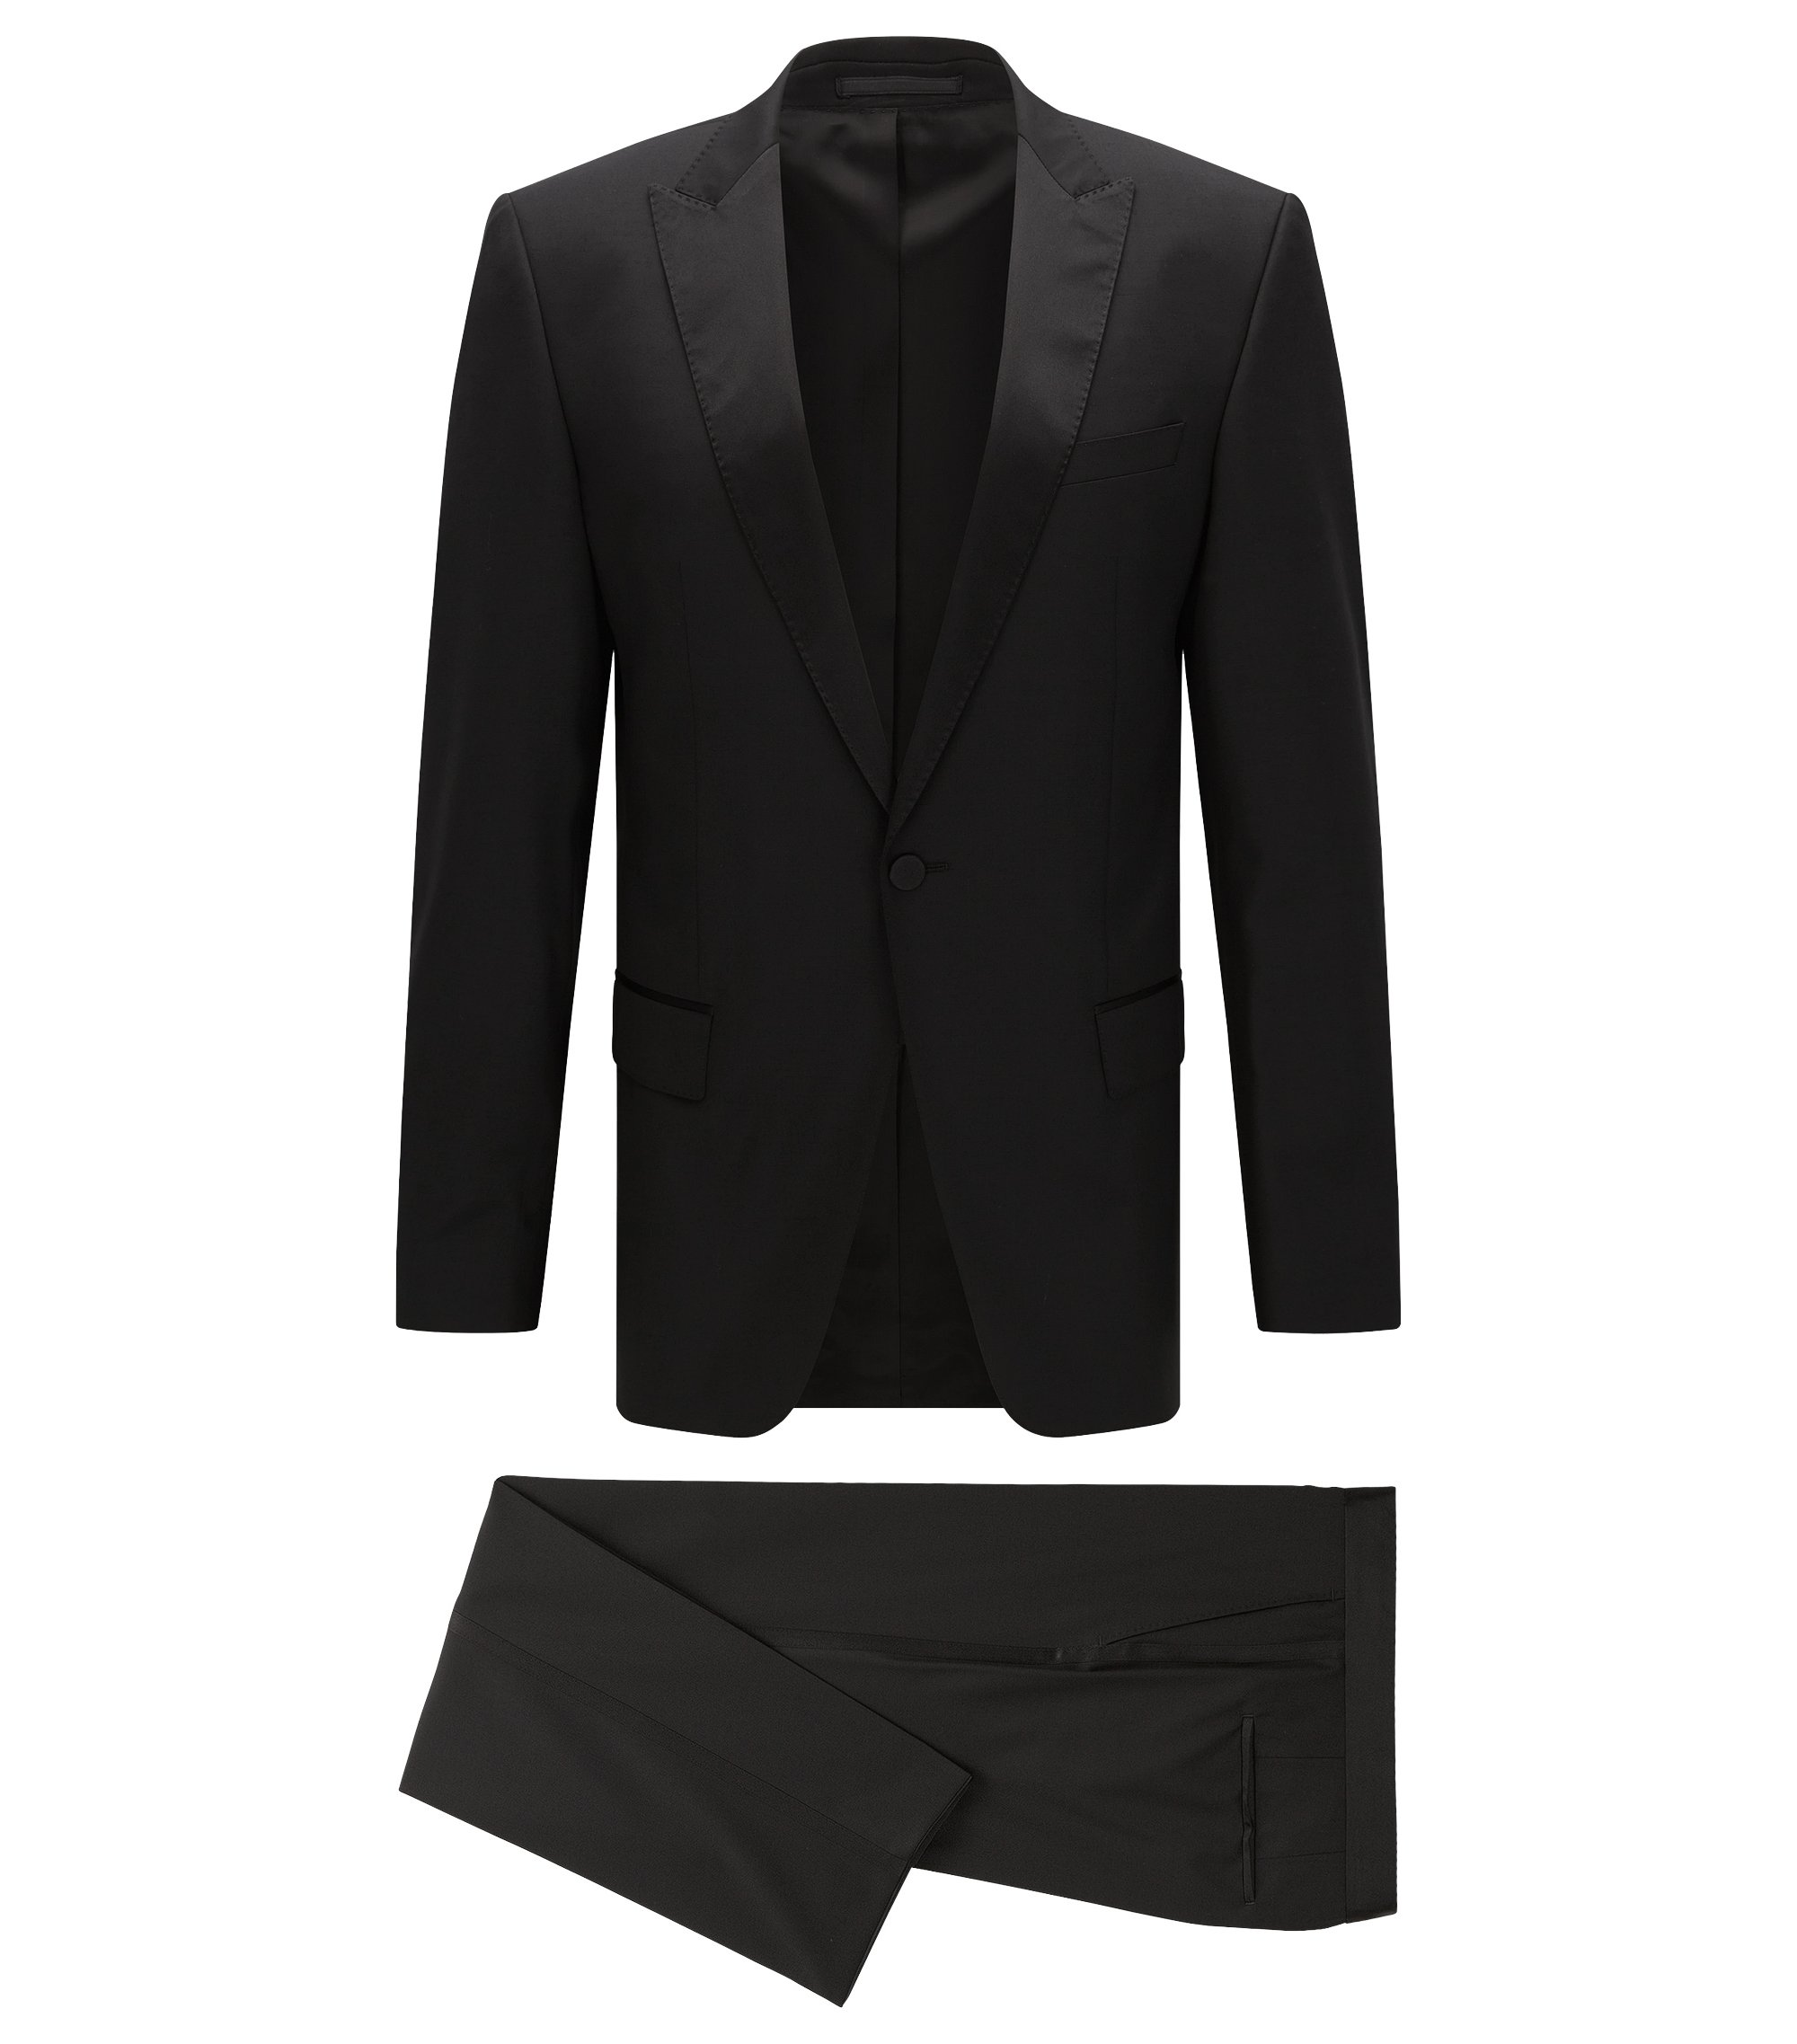 Virgin Wool Tuxedo, Slim Fit | Housten/Gloriuos, Black